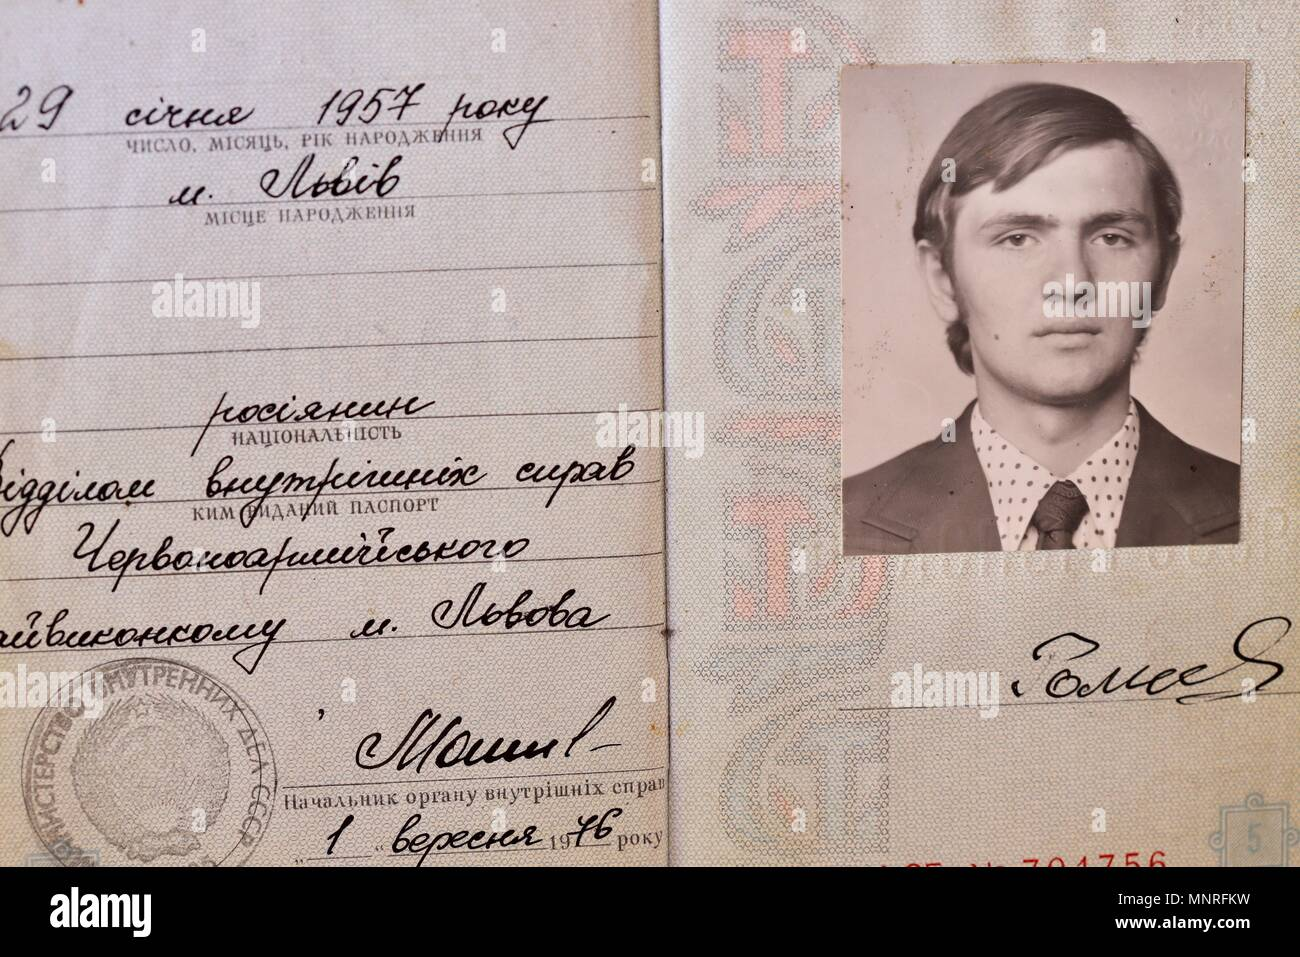 CCCP / USSR / Soviet passport issued to a male citizen in the 1970s. - Stock Image